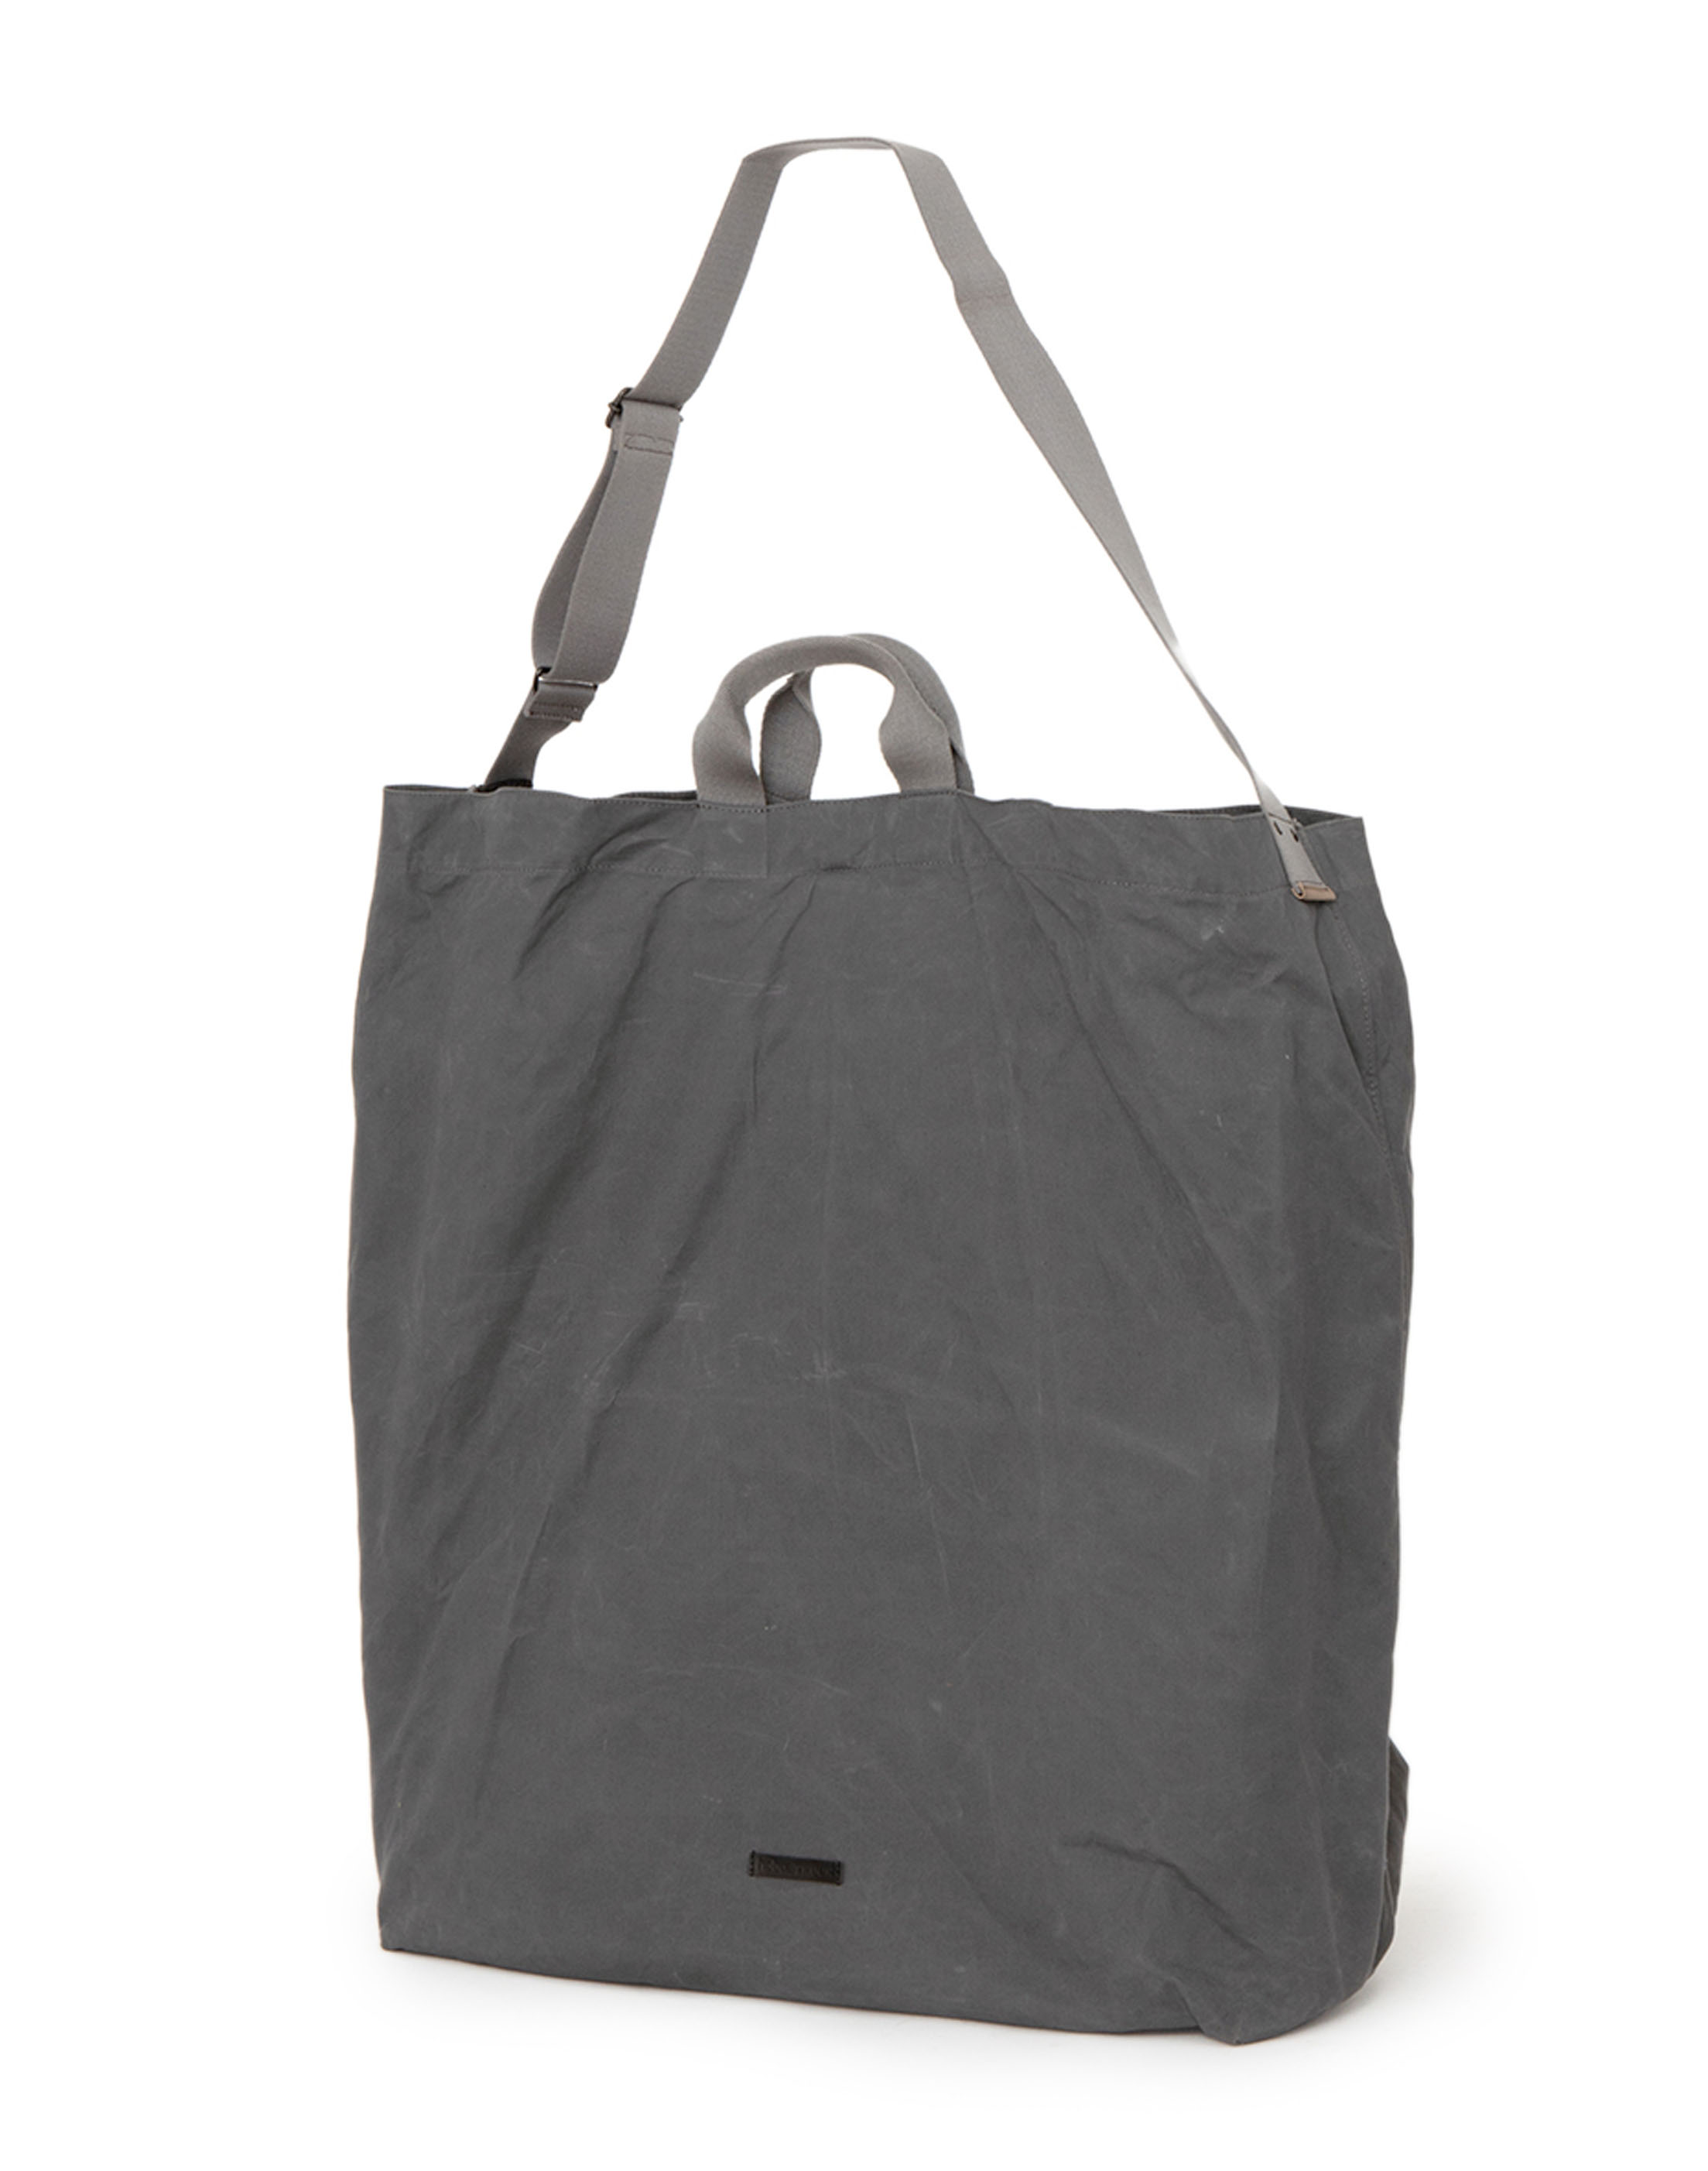 hobo×TRUCK Paraffin Cotton Canvas Giant Tote Bag